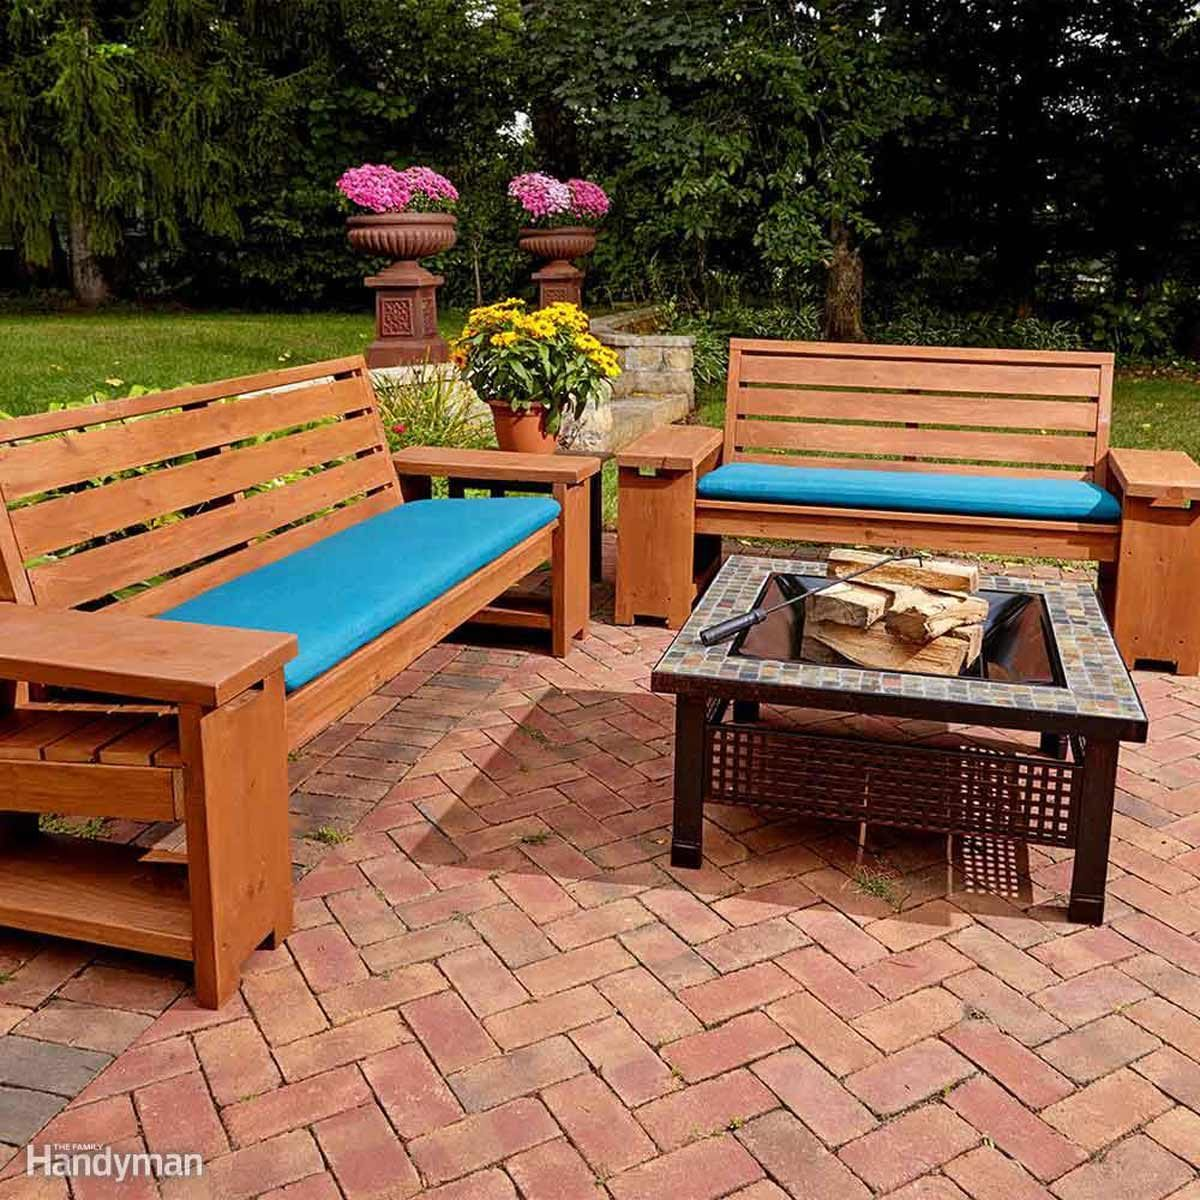 Awesome outdoor wood furniture ideas ideas liltigertoo for Backyard pool furniture